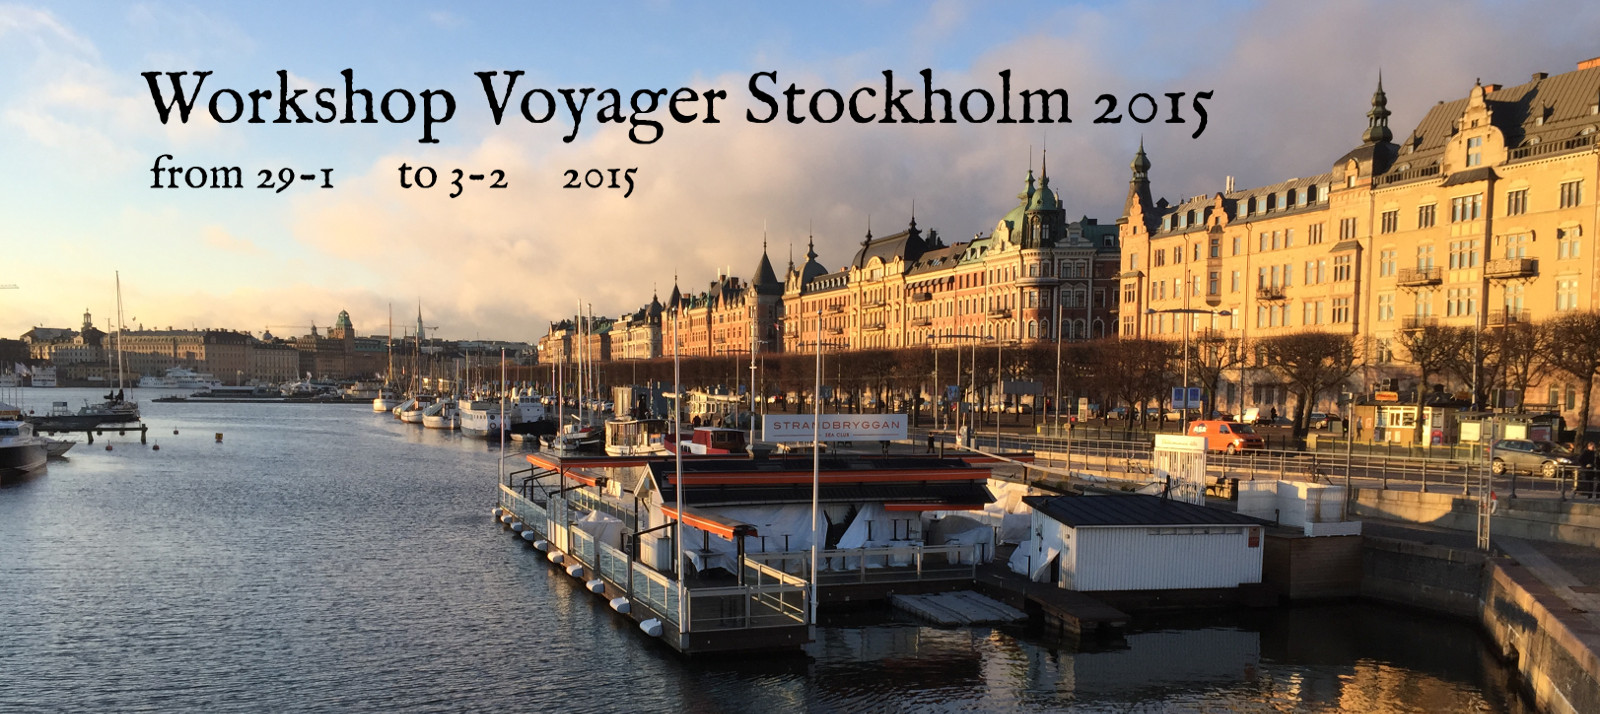 Workshop Voyager Stockholm 2015-1600-2